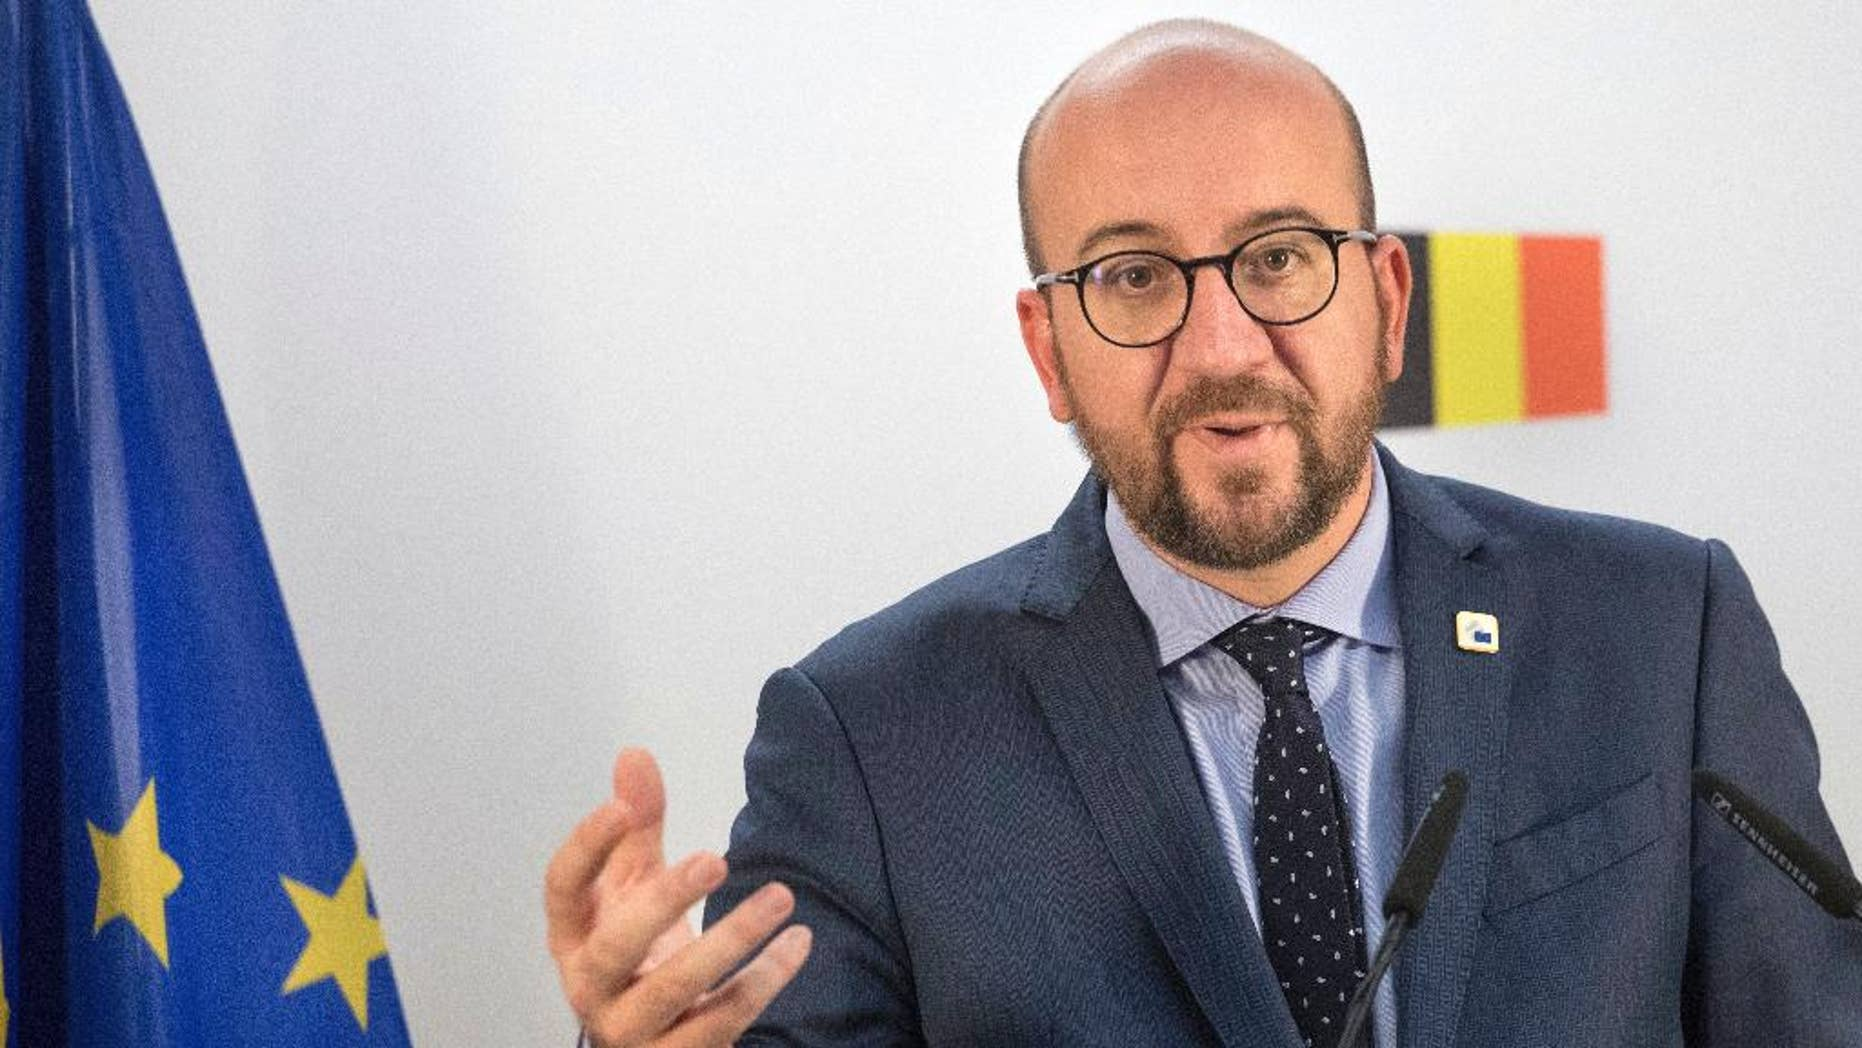 Belgian Prime Minister Charles Michel holds a press conference on the second day of the EU summit in Brussels, Friday, Oct. 21, 2016. The European Union was scrambling Friday to salvage a massive free trade deal with Canada that was being held up by a small region in Belgium. (AP Photo/Olivier Matthys)